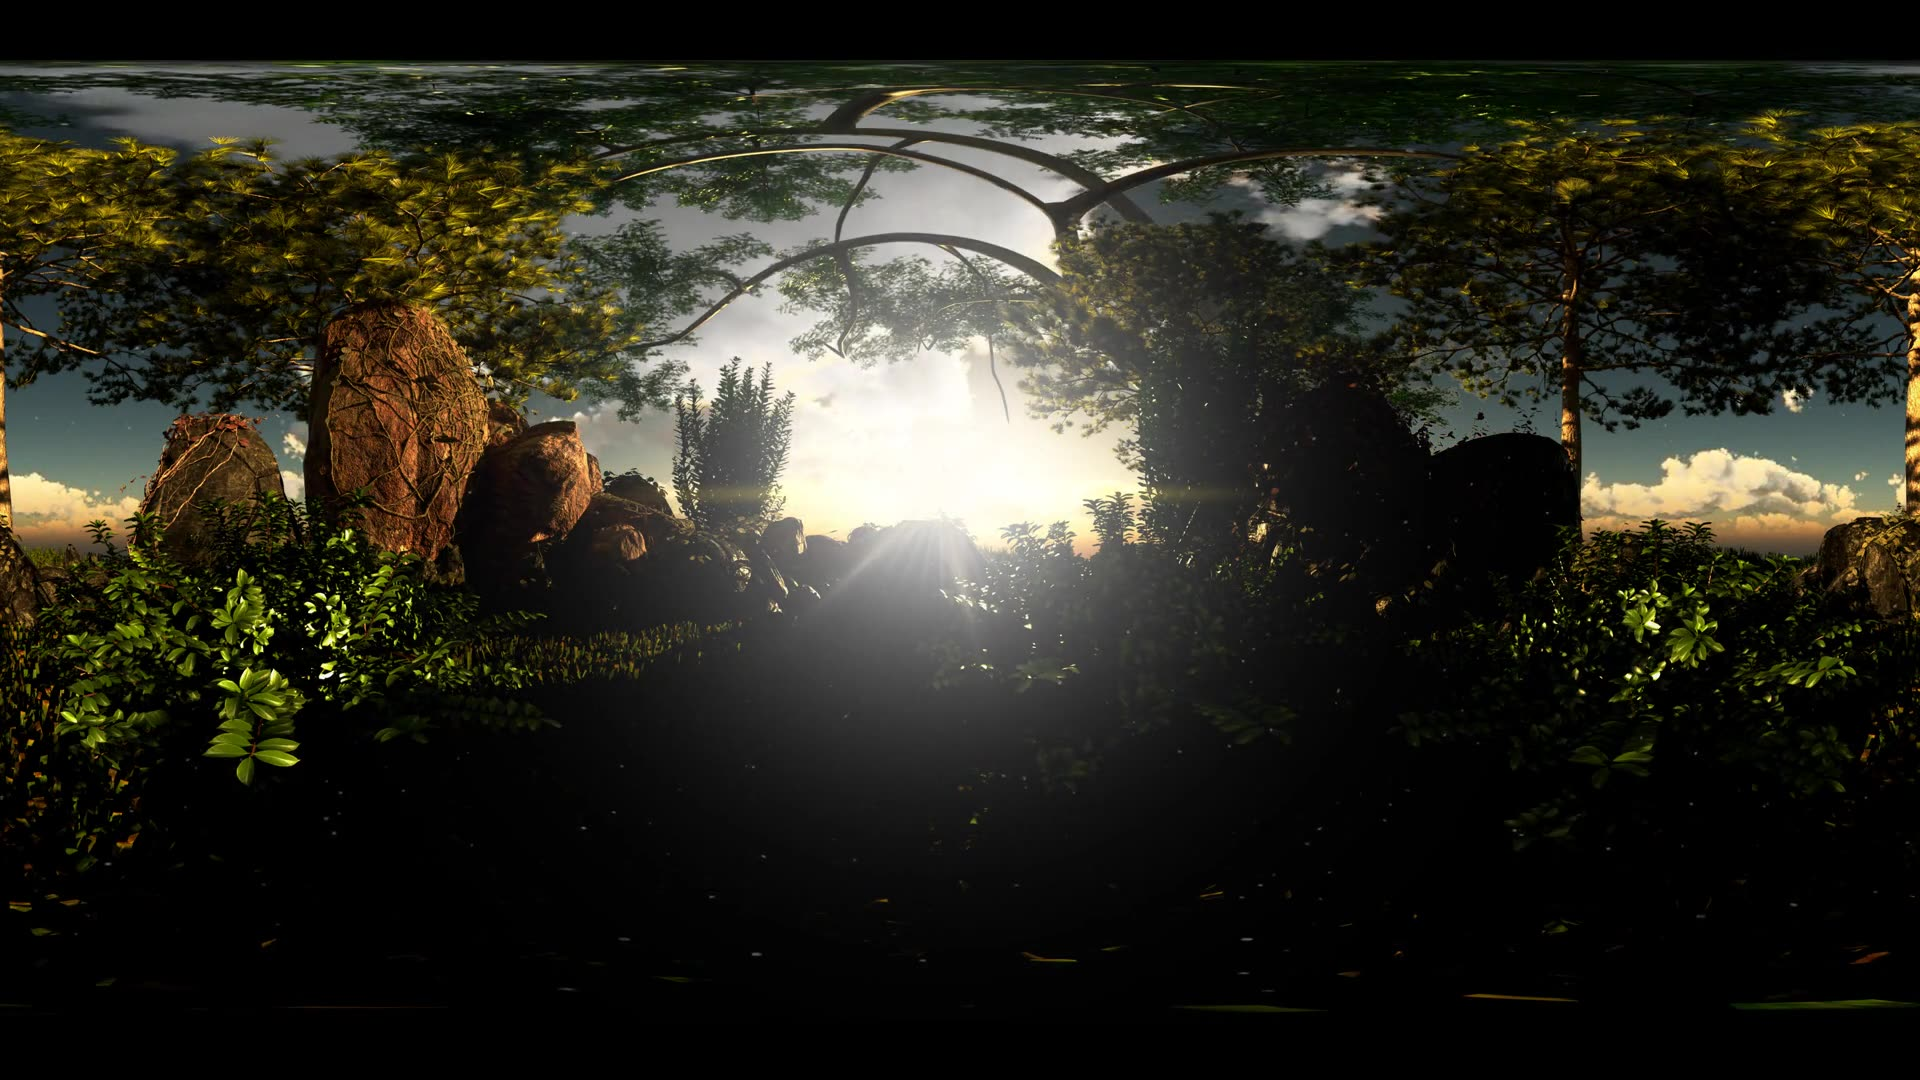 vr 360. timelapse of cloud sunset and trees at rocky field in virtual reality 360 degree video